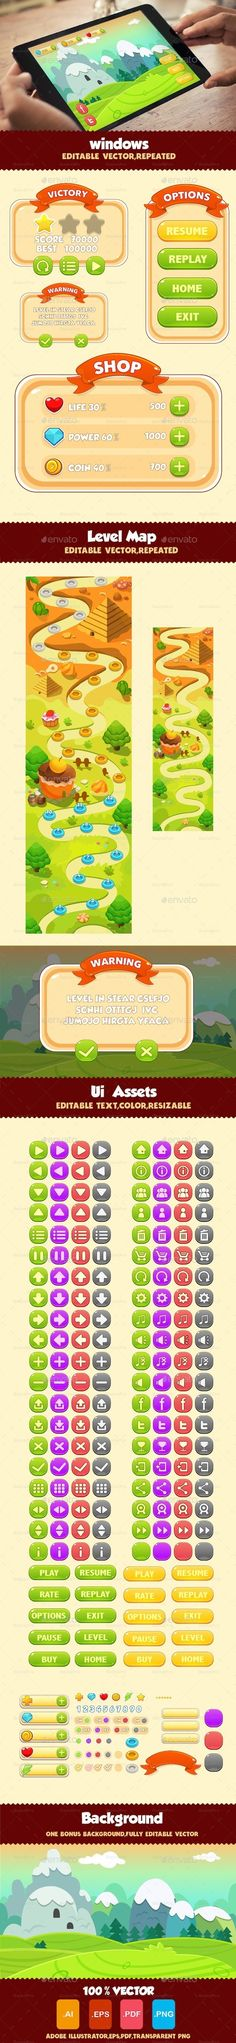 Game UI Pack 01 (User Interfaces)